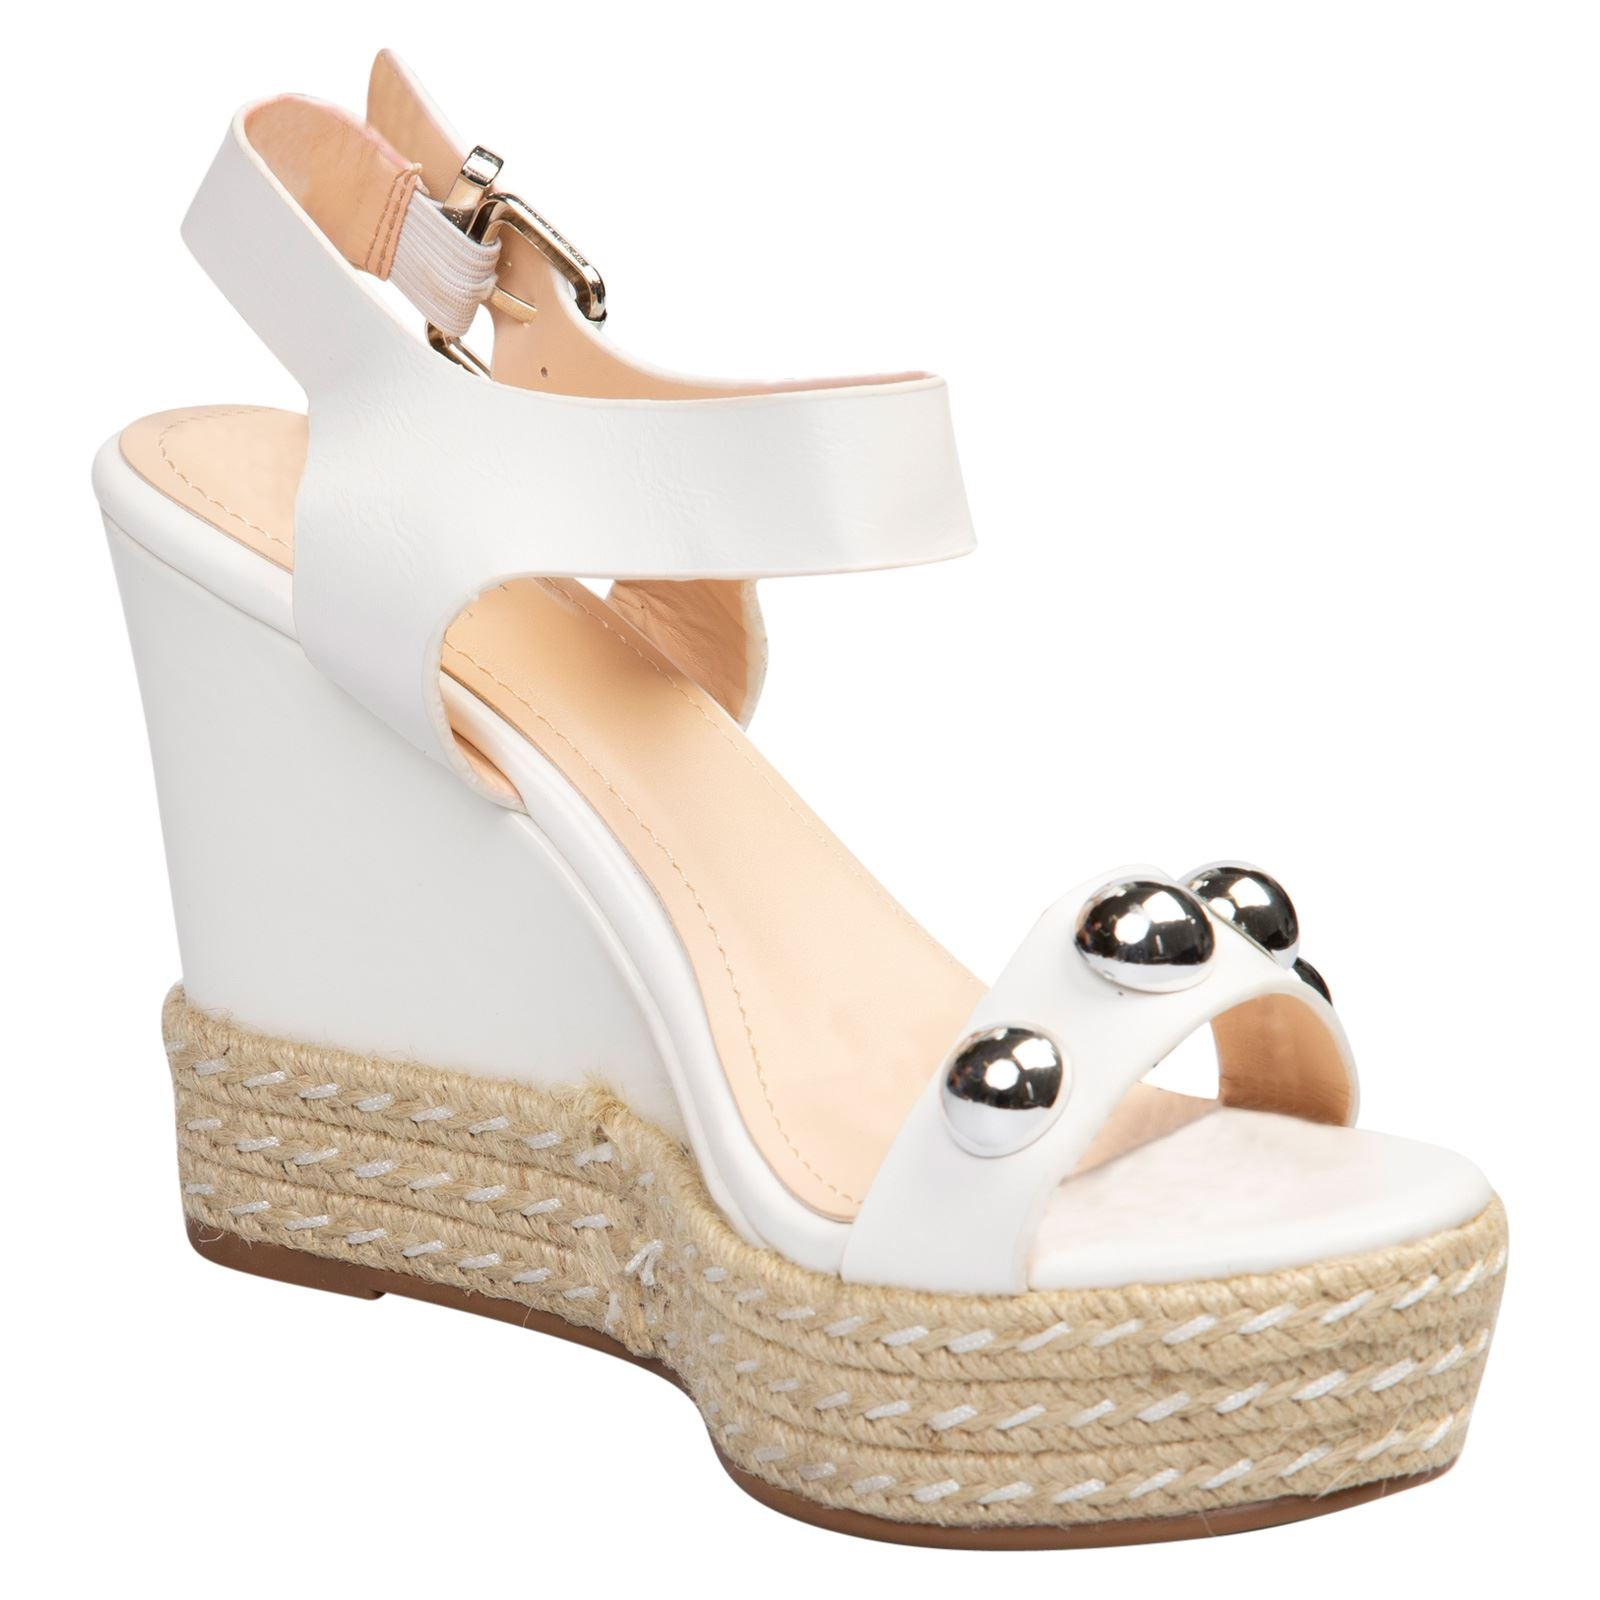 Iolanthe Studded Platform Sandals in White Faux Leather - Feet First Fashion